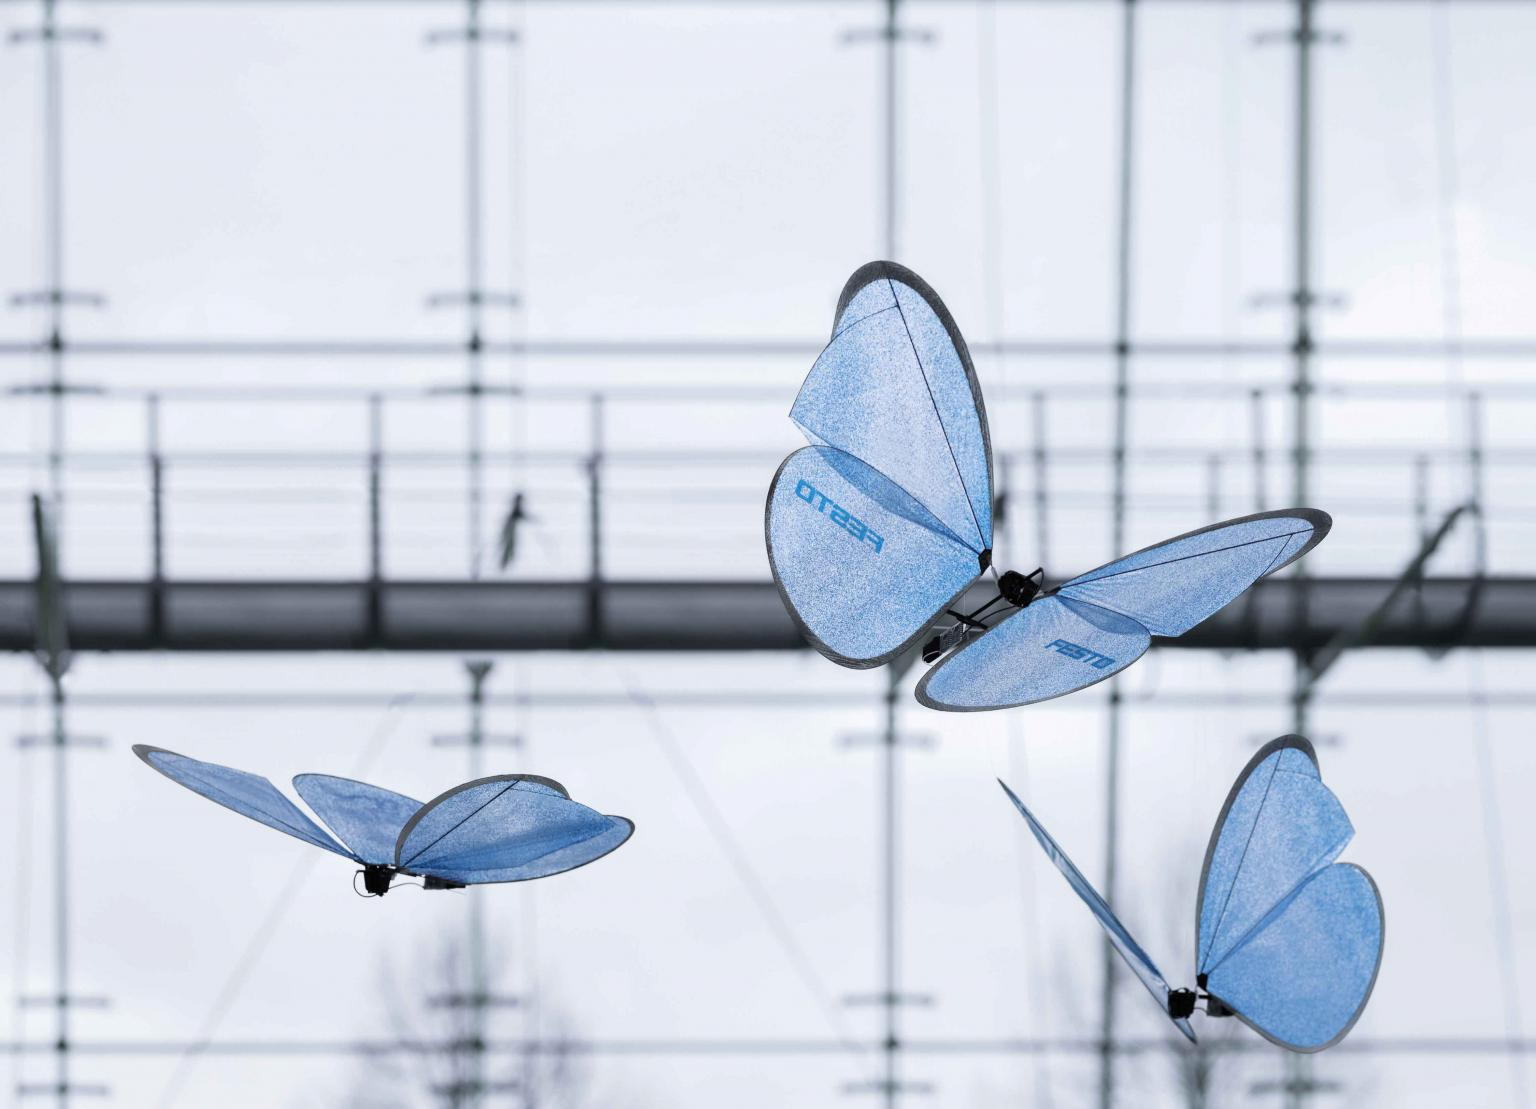 To prevent the ultra-lightweight eMotionButterflies from colliding, they are co-ordinated by an indoor GPS